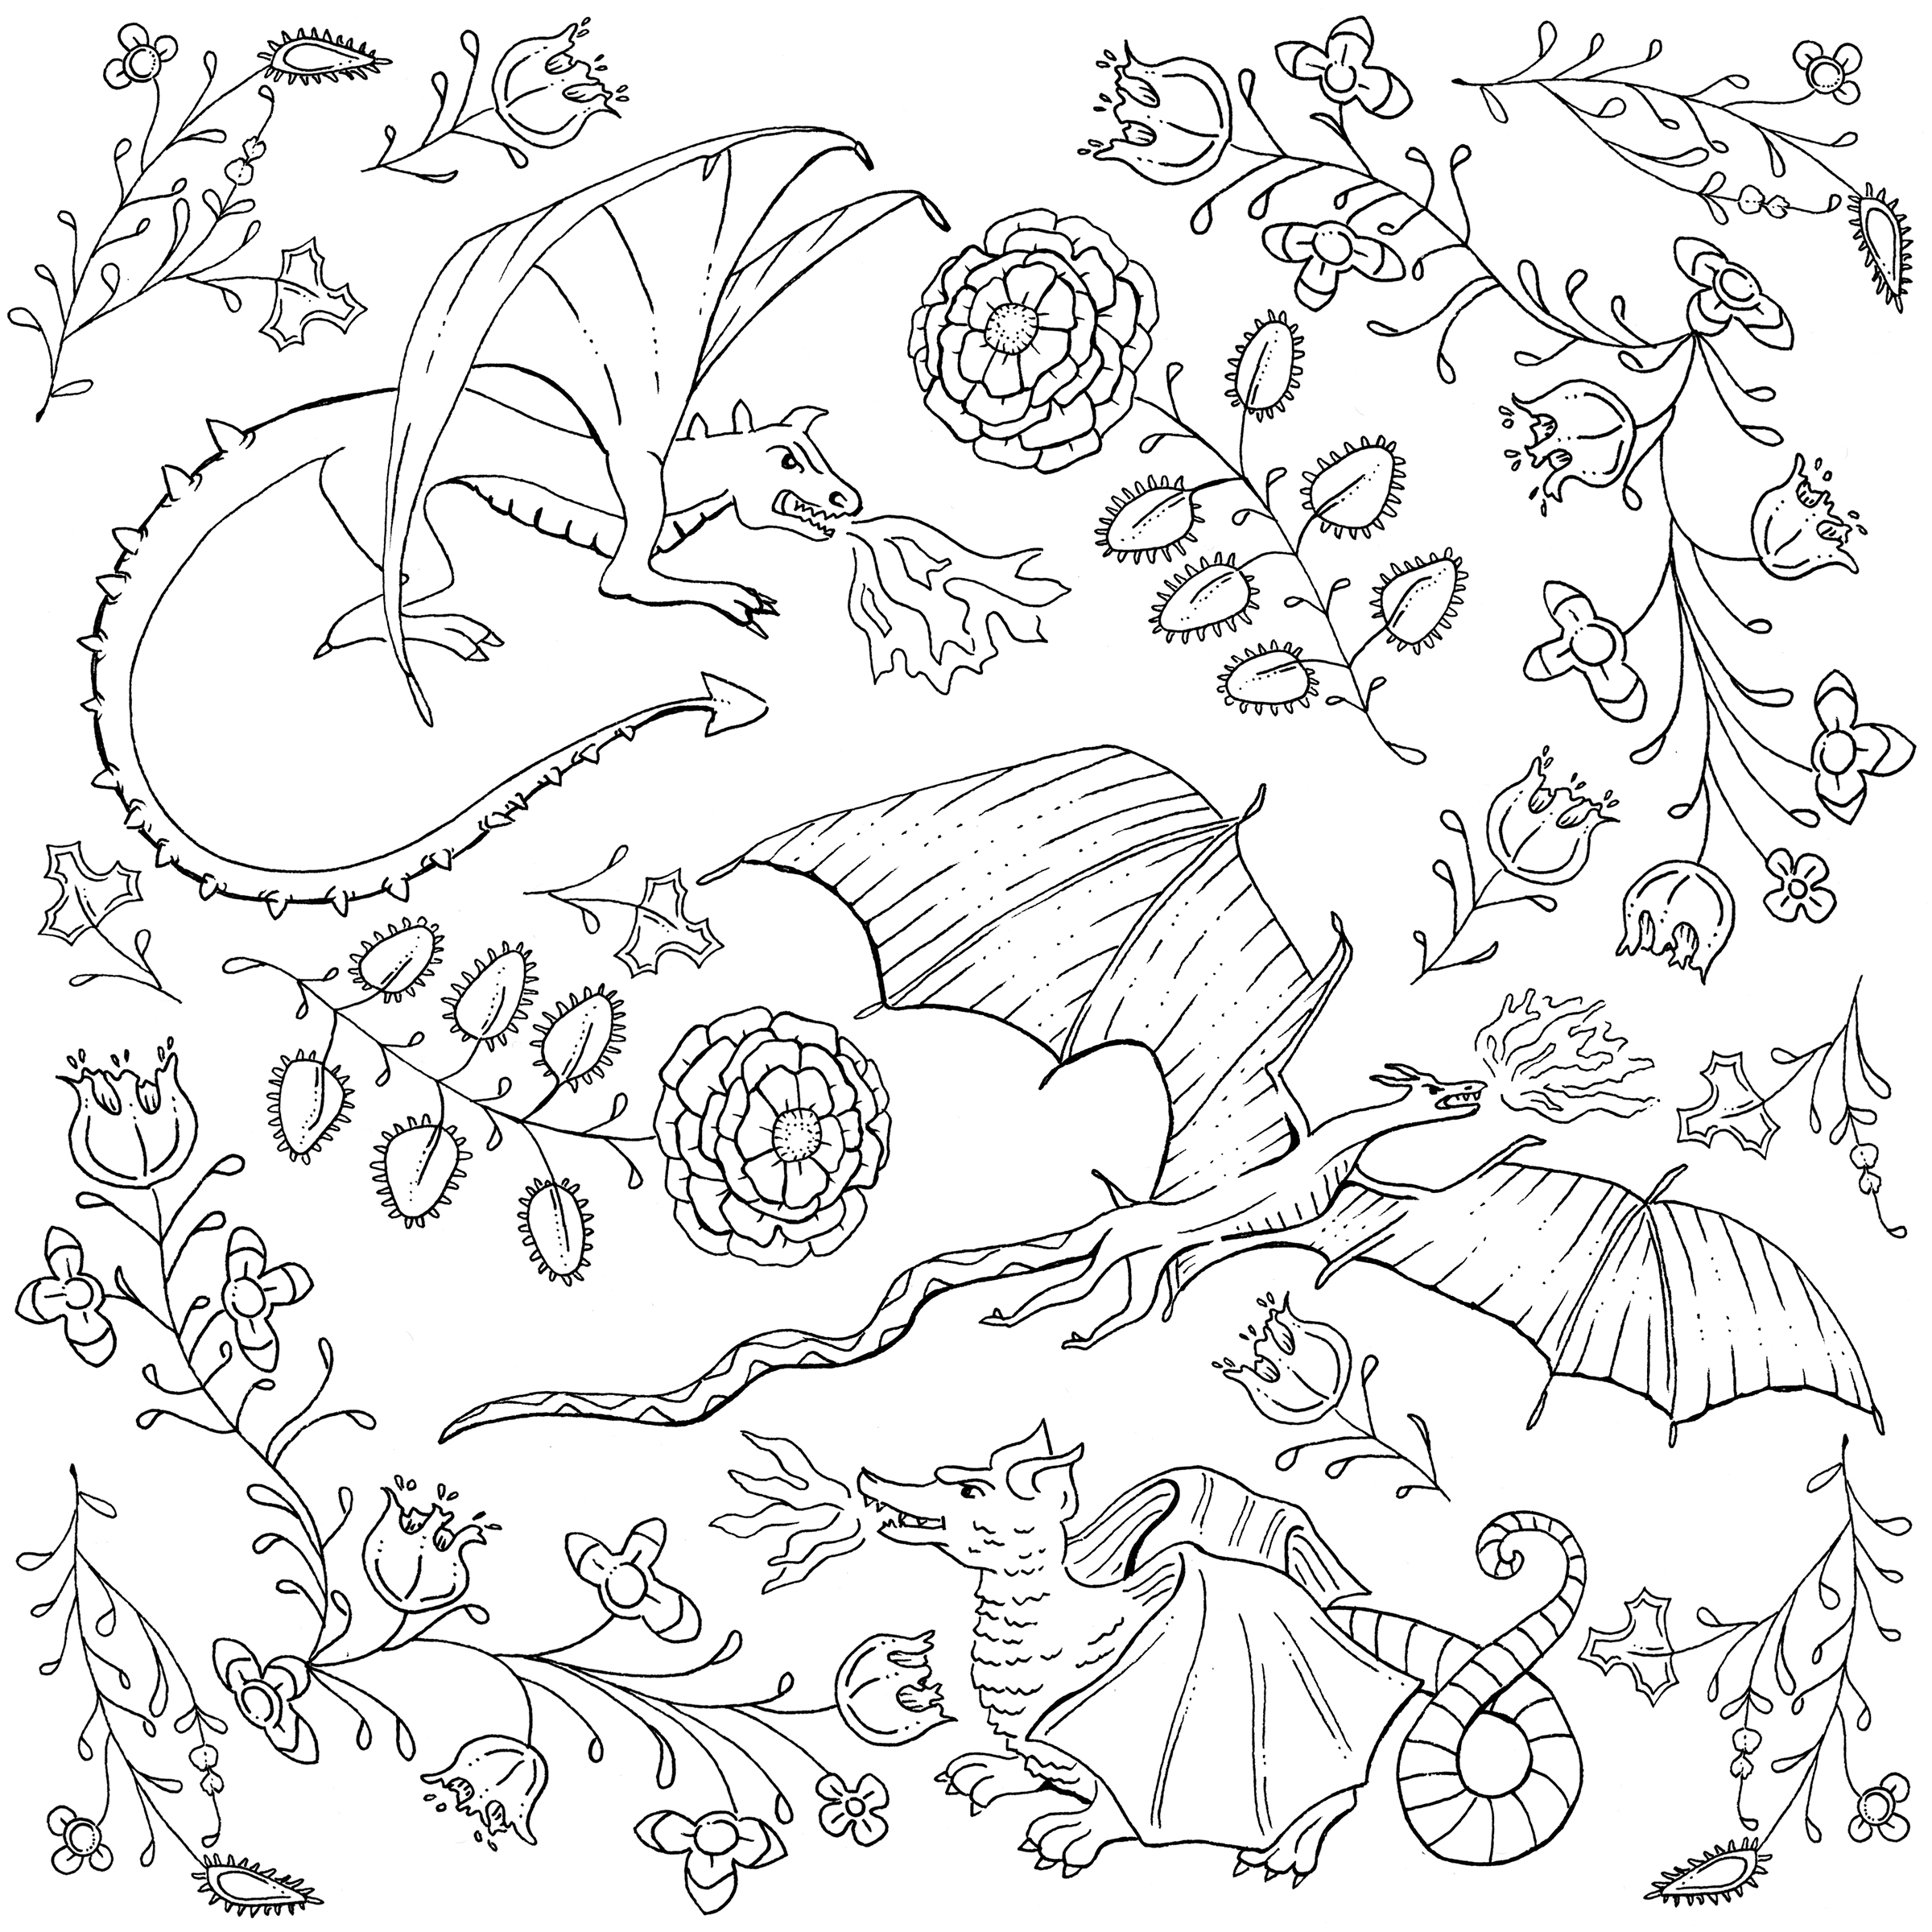 Dragons-and-flowers.jpg